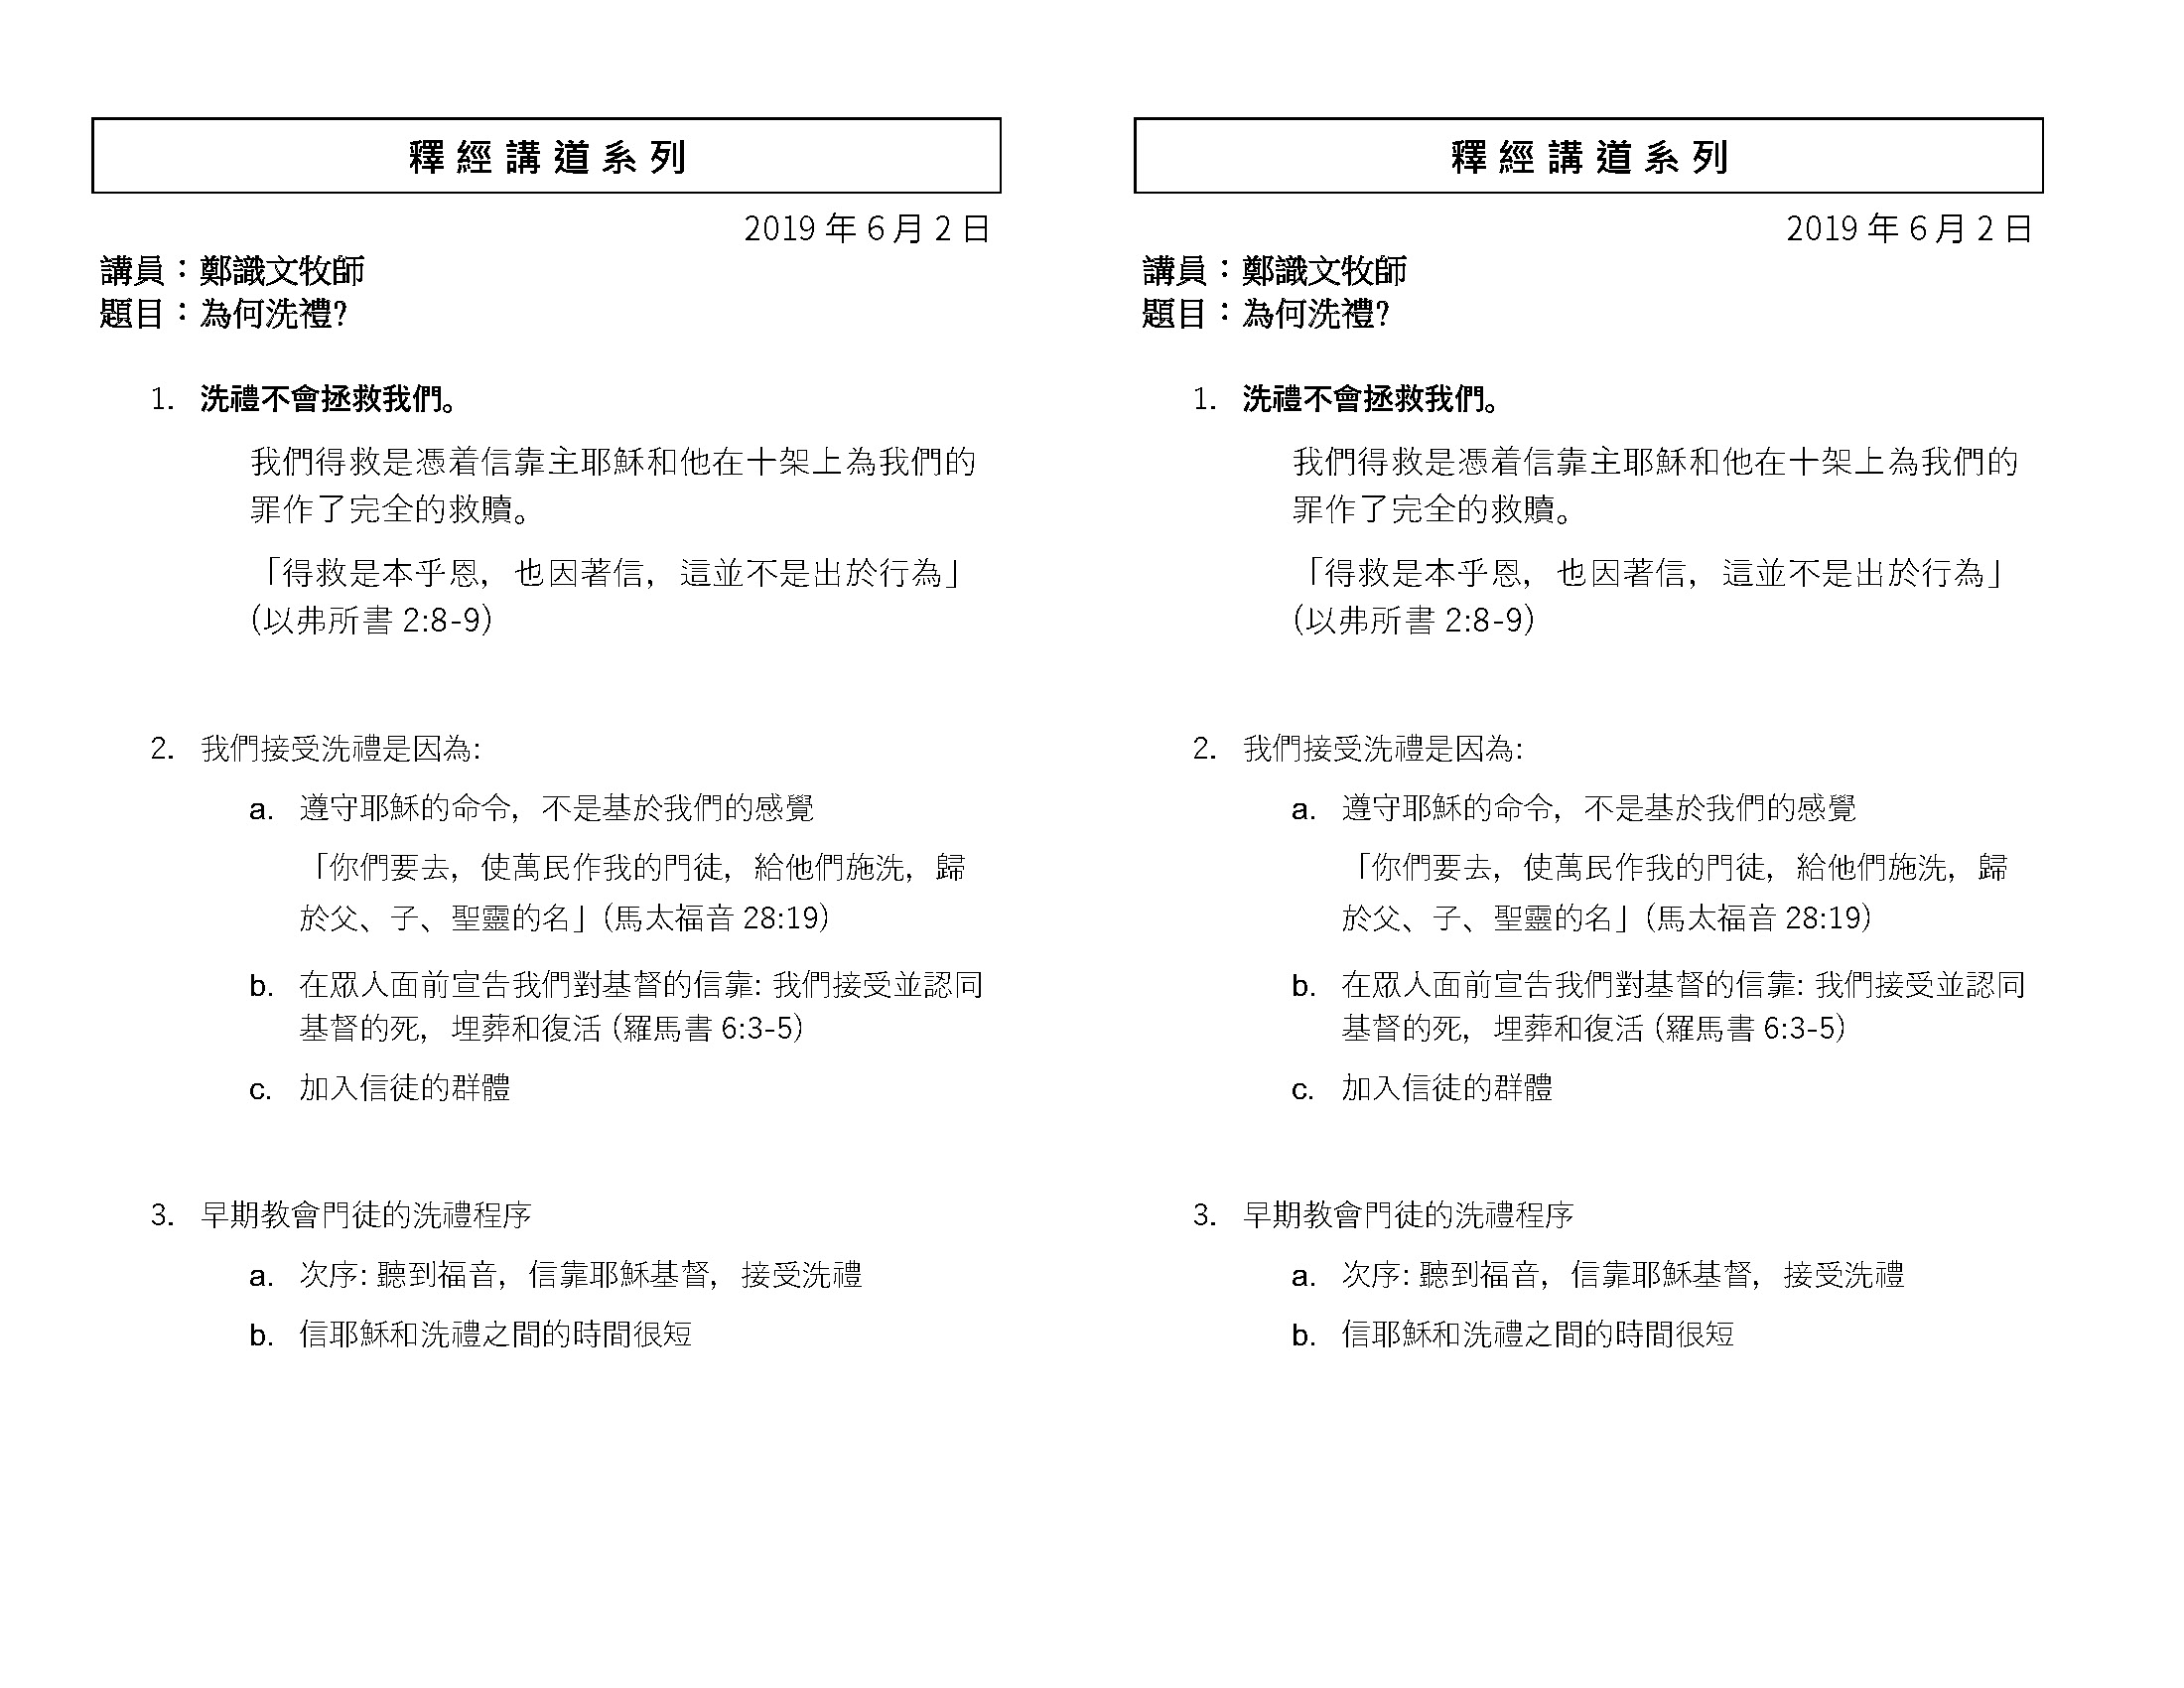 Chinese Bulletin 2019-6-2_Page_3.jpg